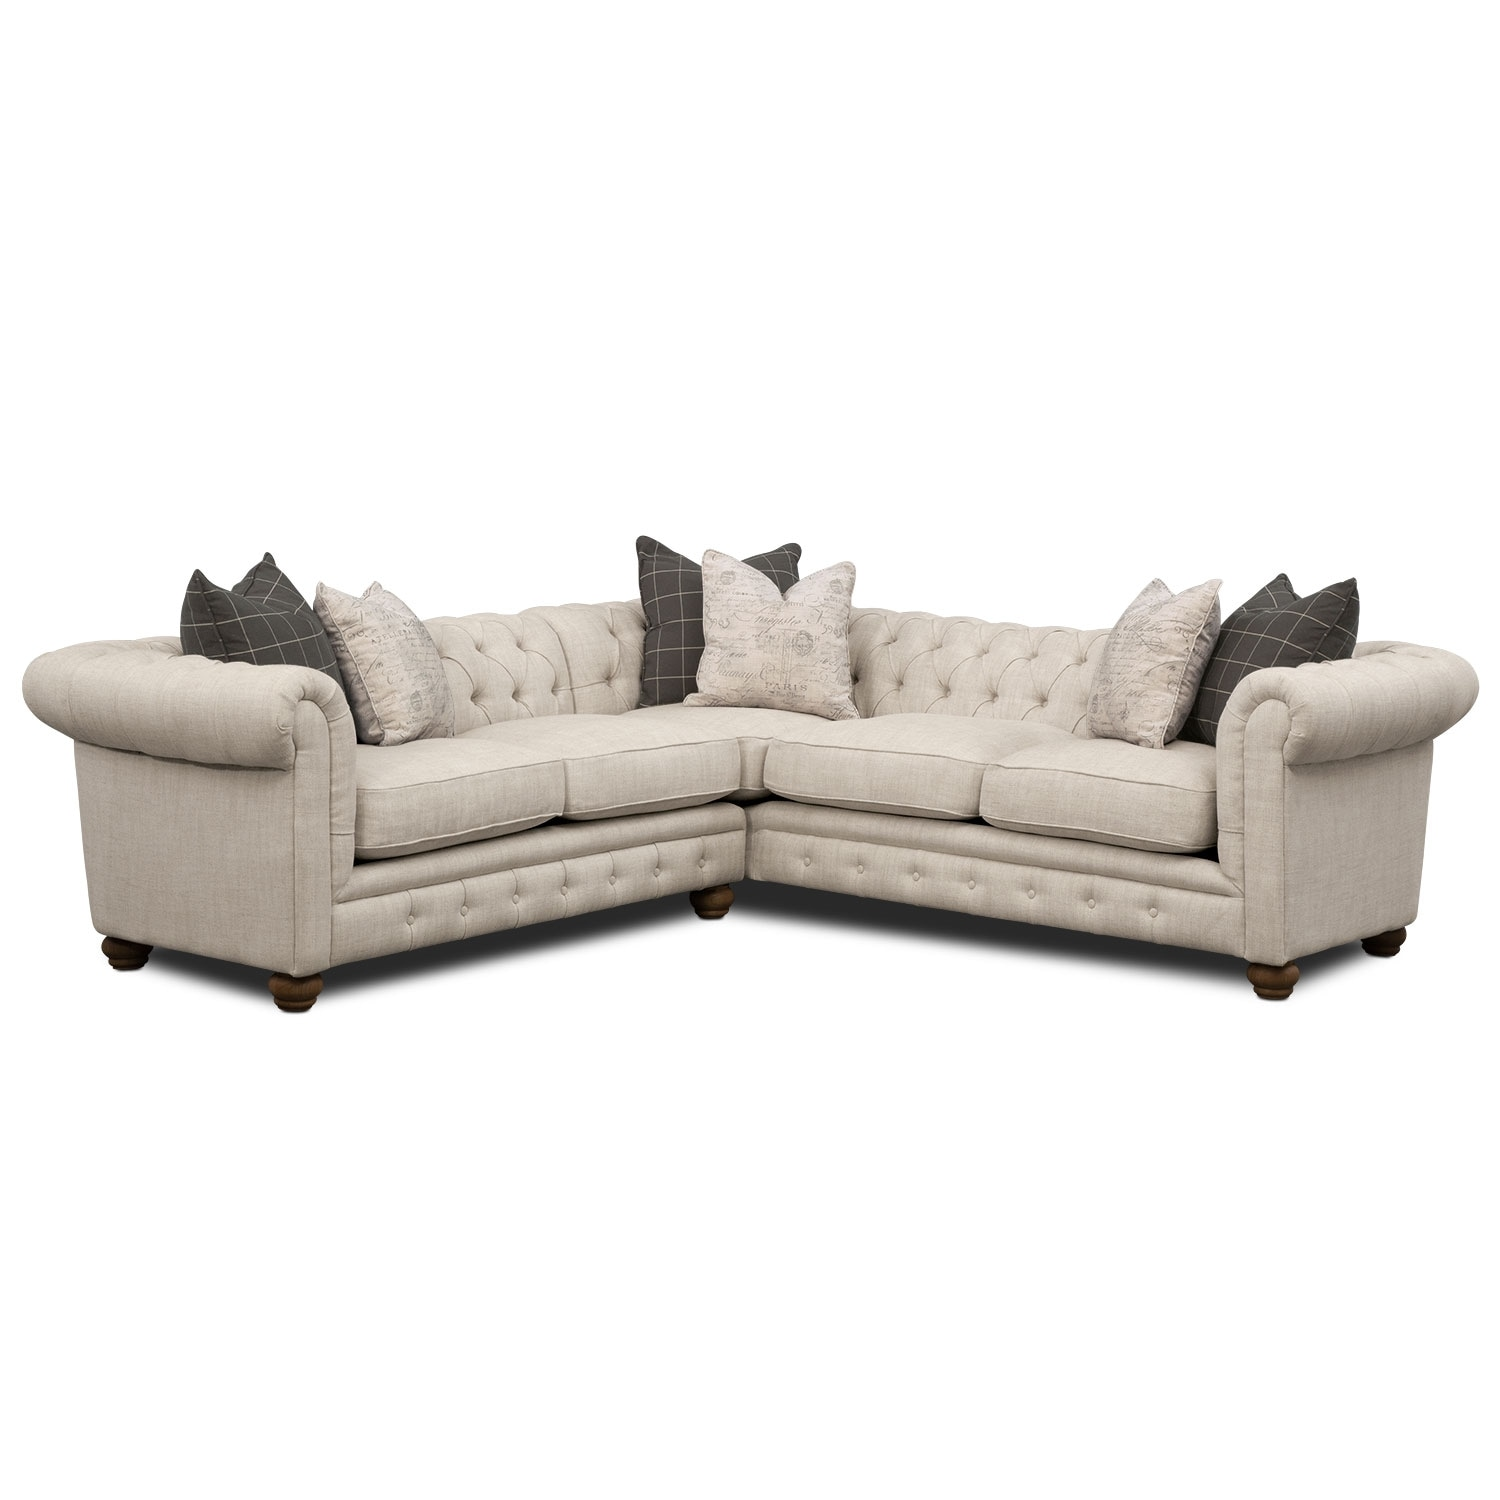 Madeline Beige Sectional Sofa